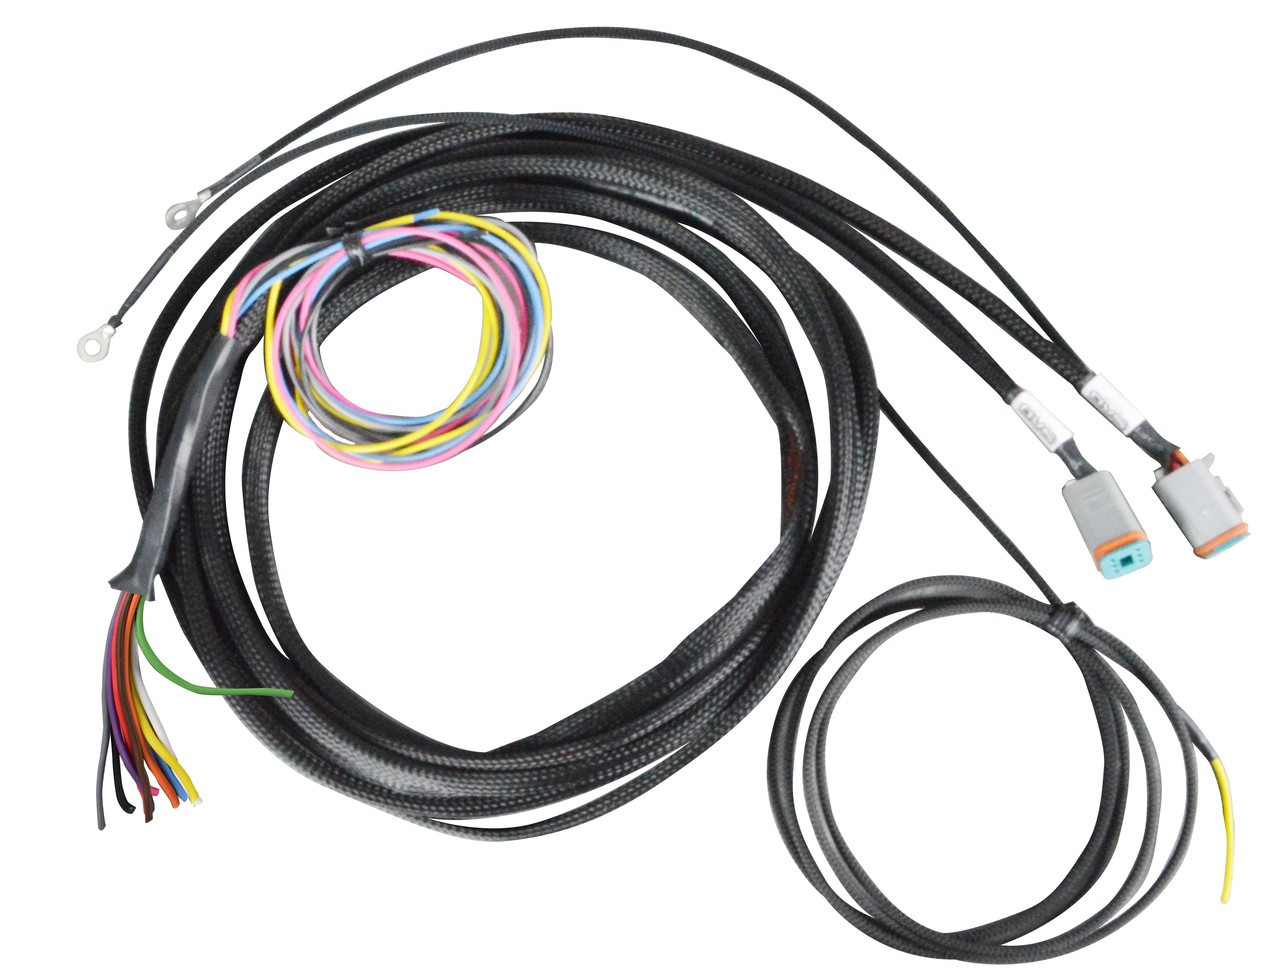 small resolution of avs valve wiring harness 12 17 22 accuair endo